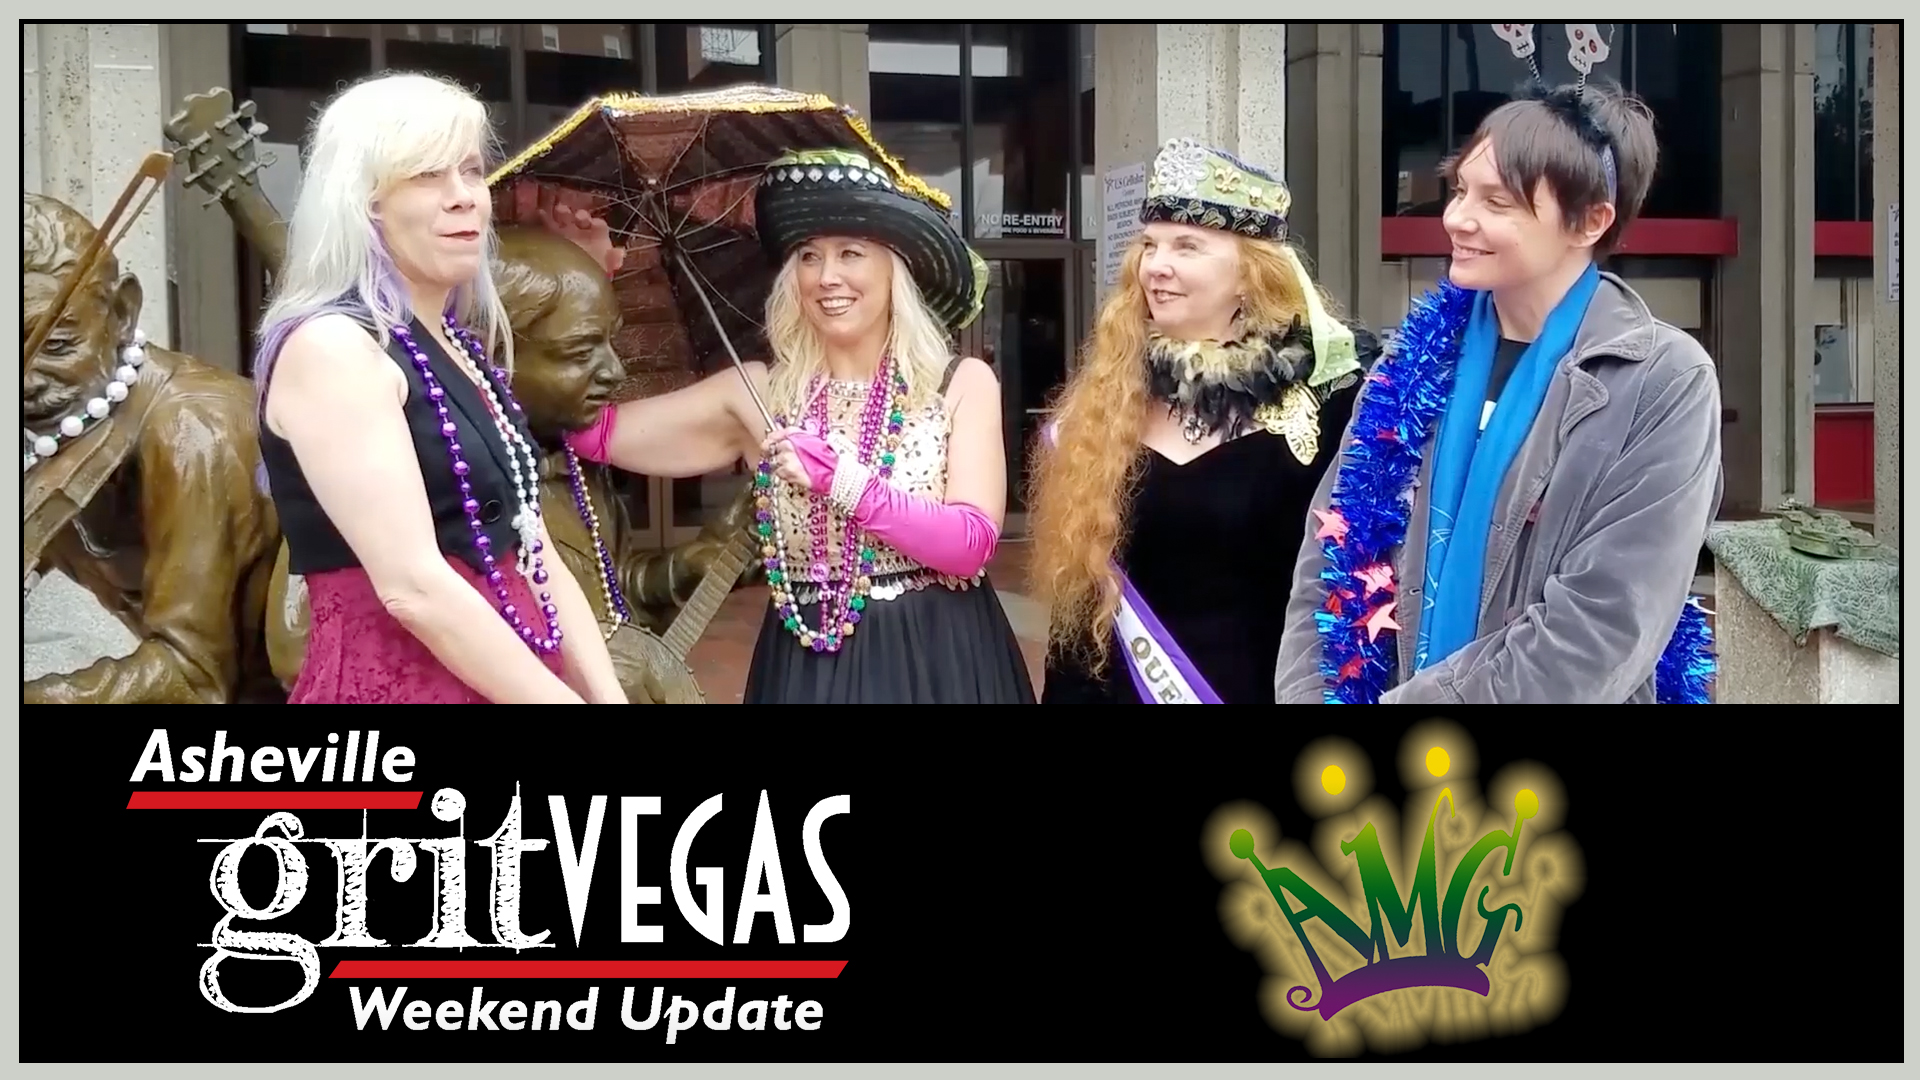 VIDEO: Asheville Mardis Gras parade and weekend events roundup